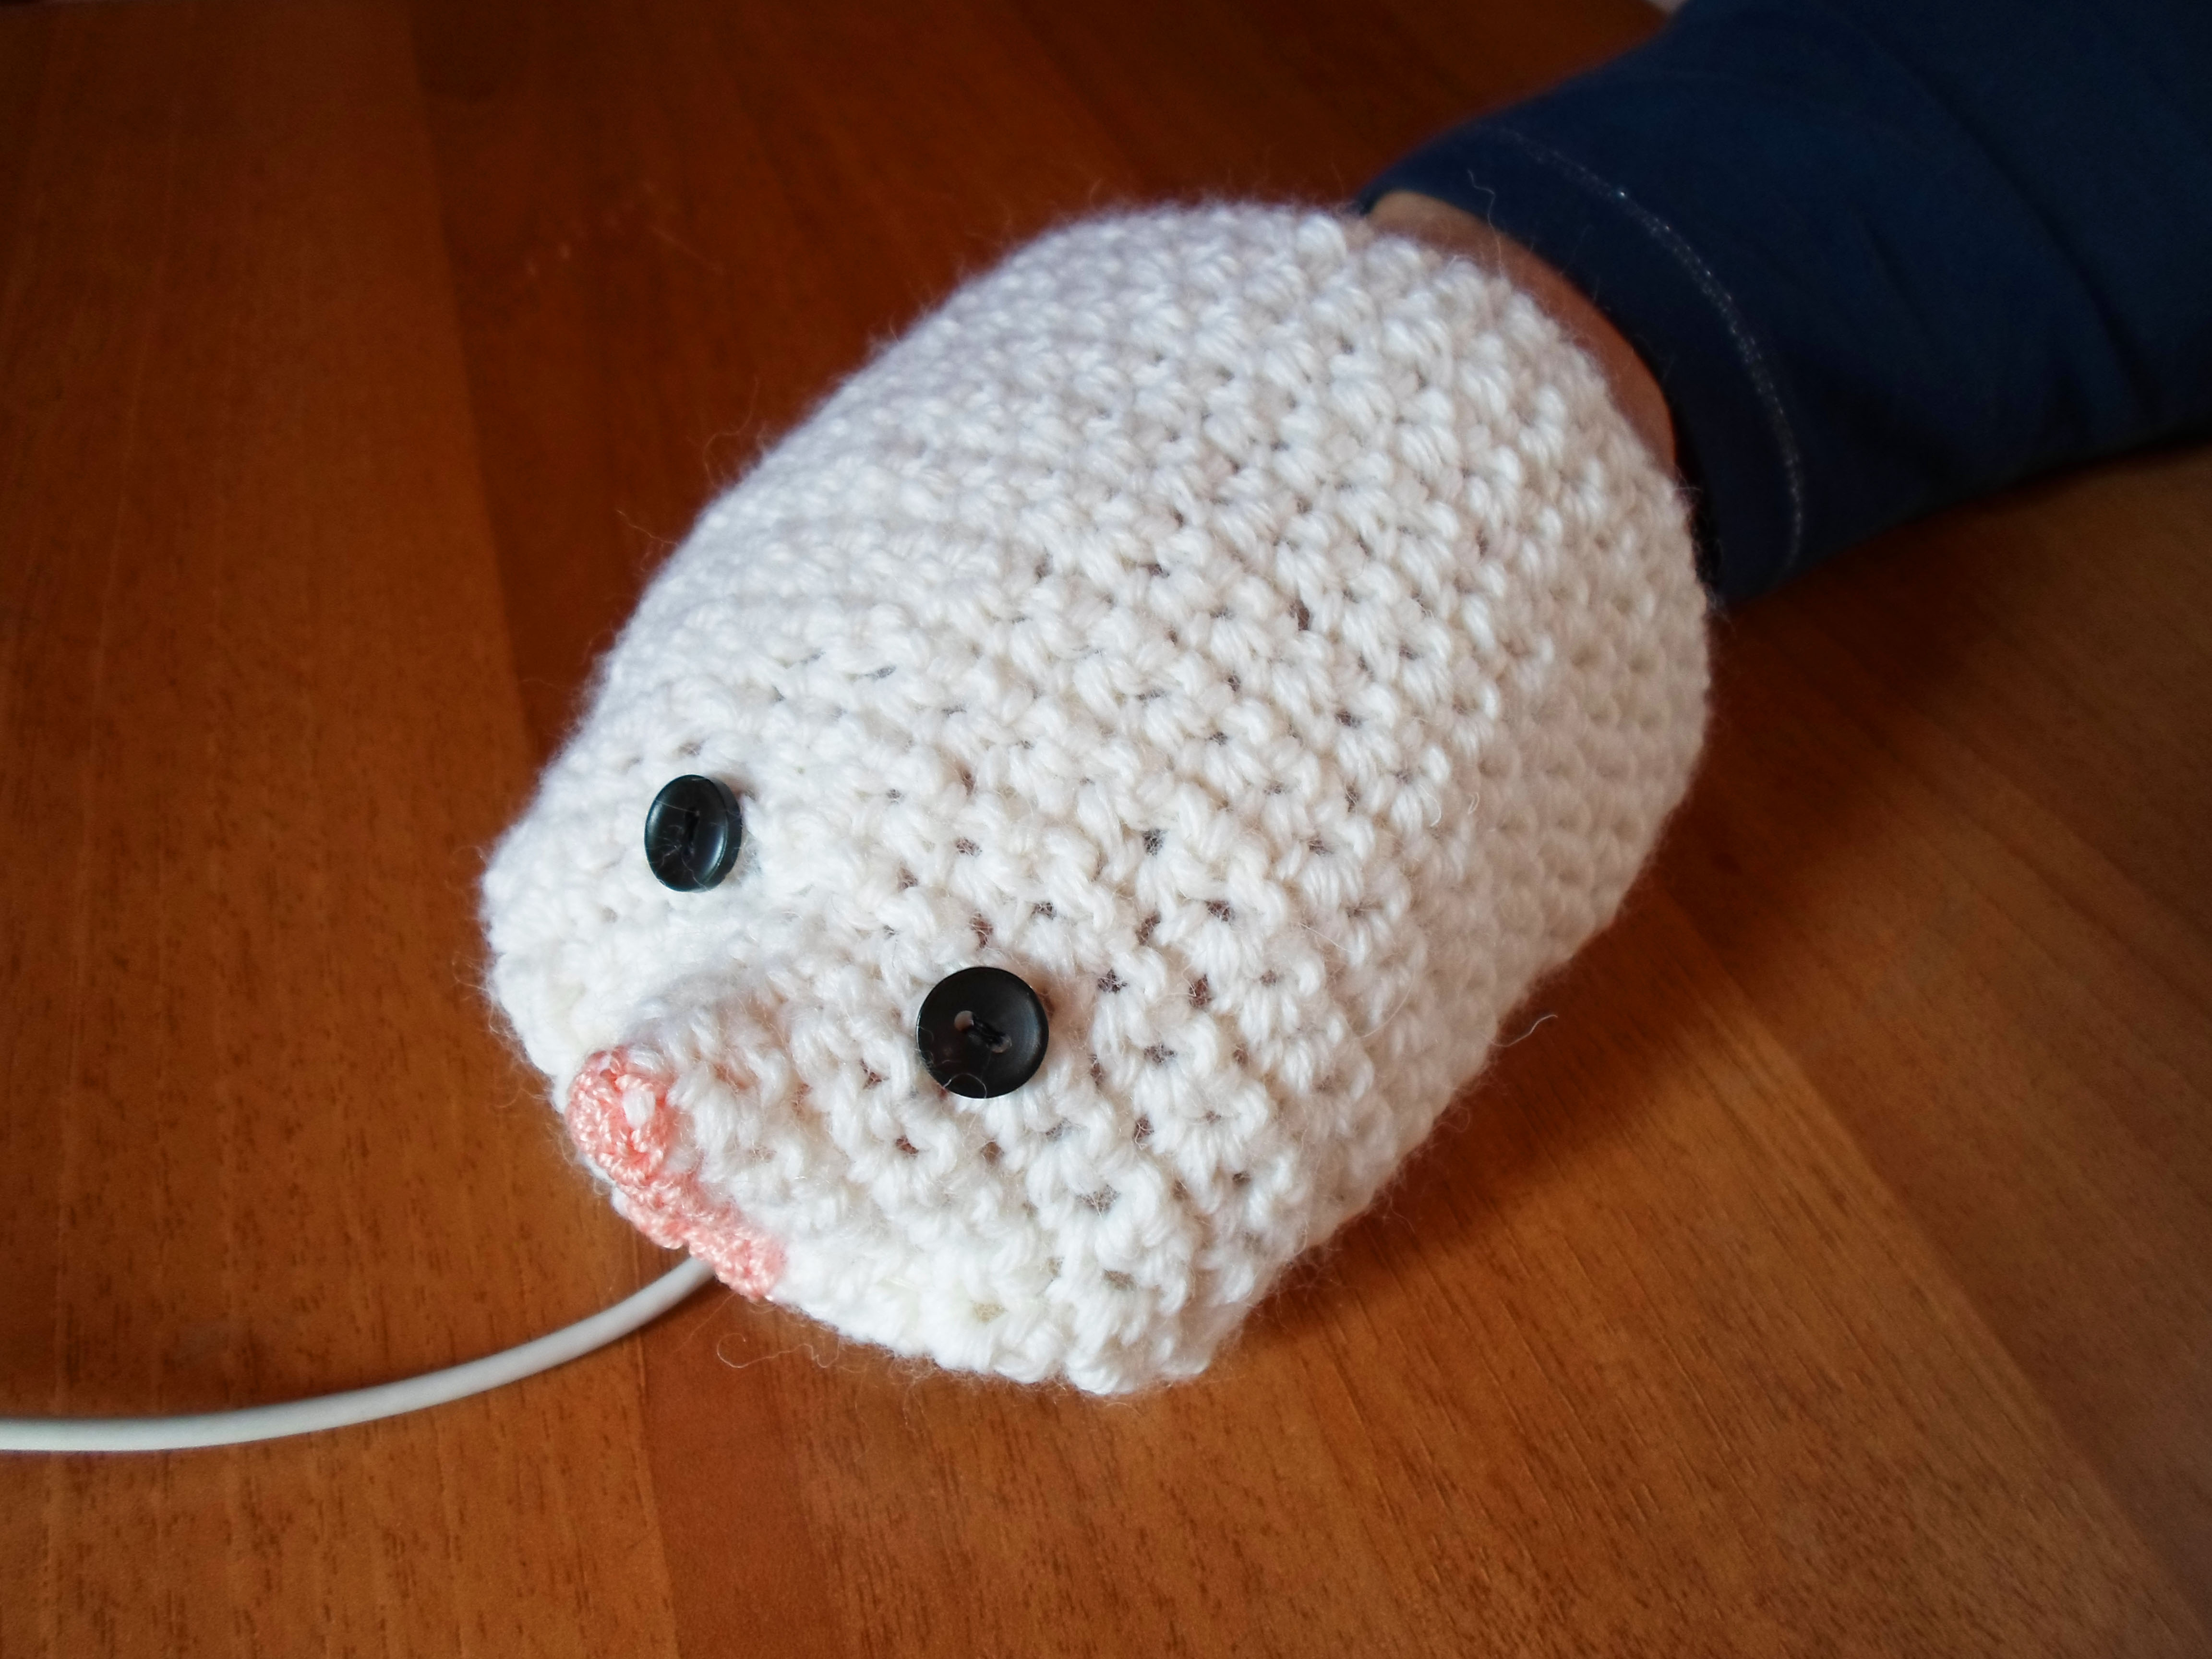 Mouse Mitten - a mitten for your mouse